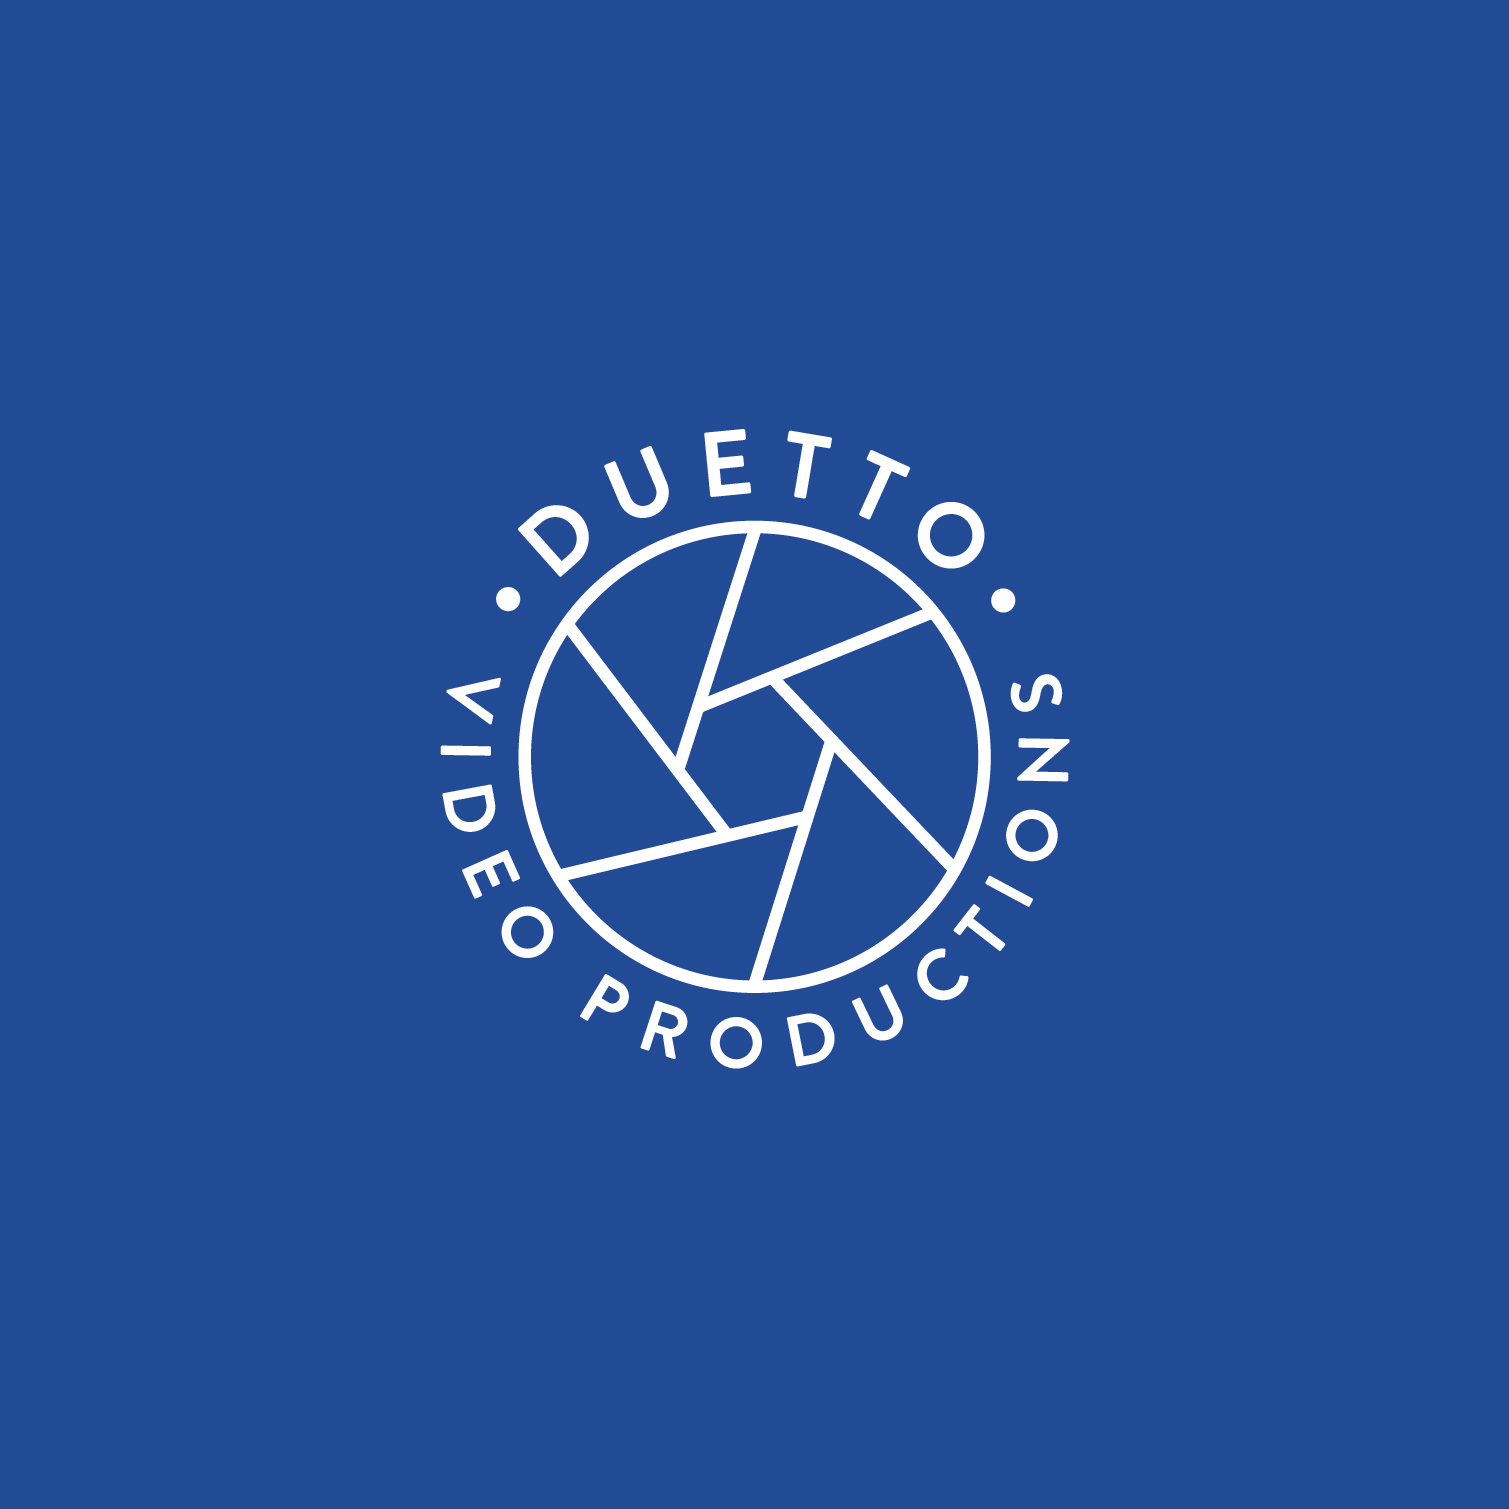 duetto_video_productions_blue_logo-01.jpg